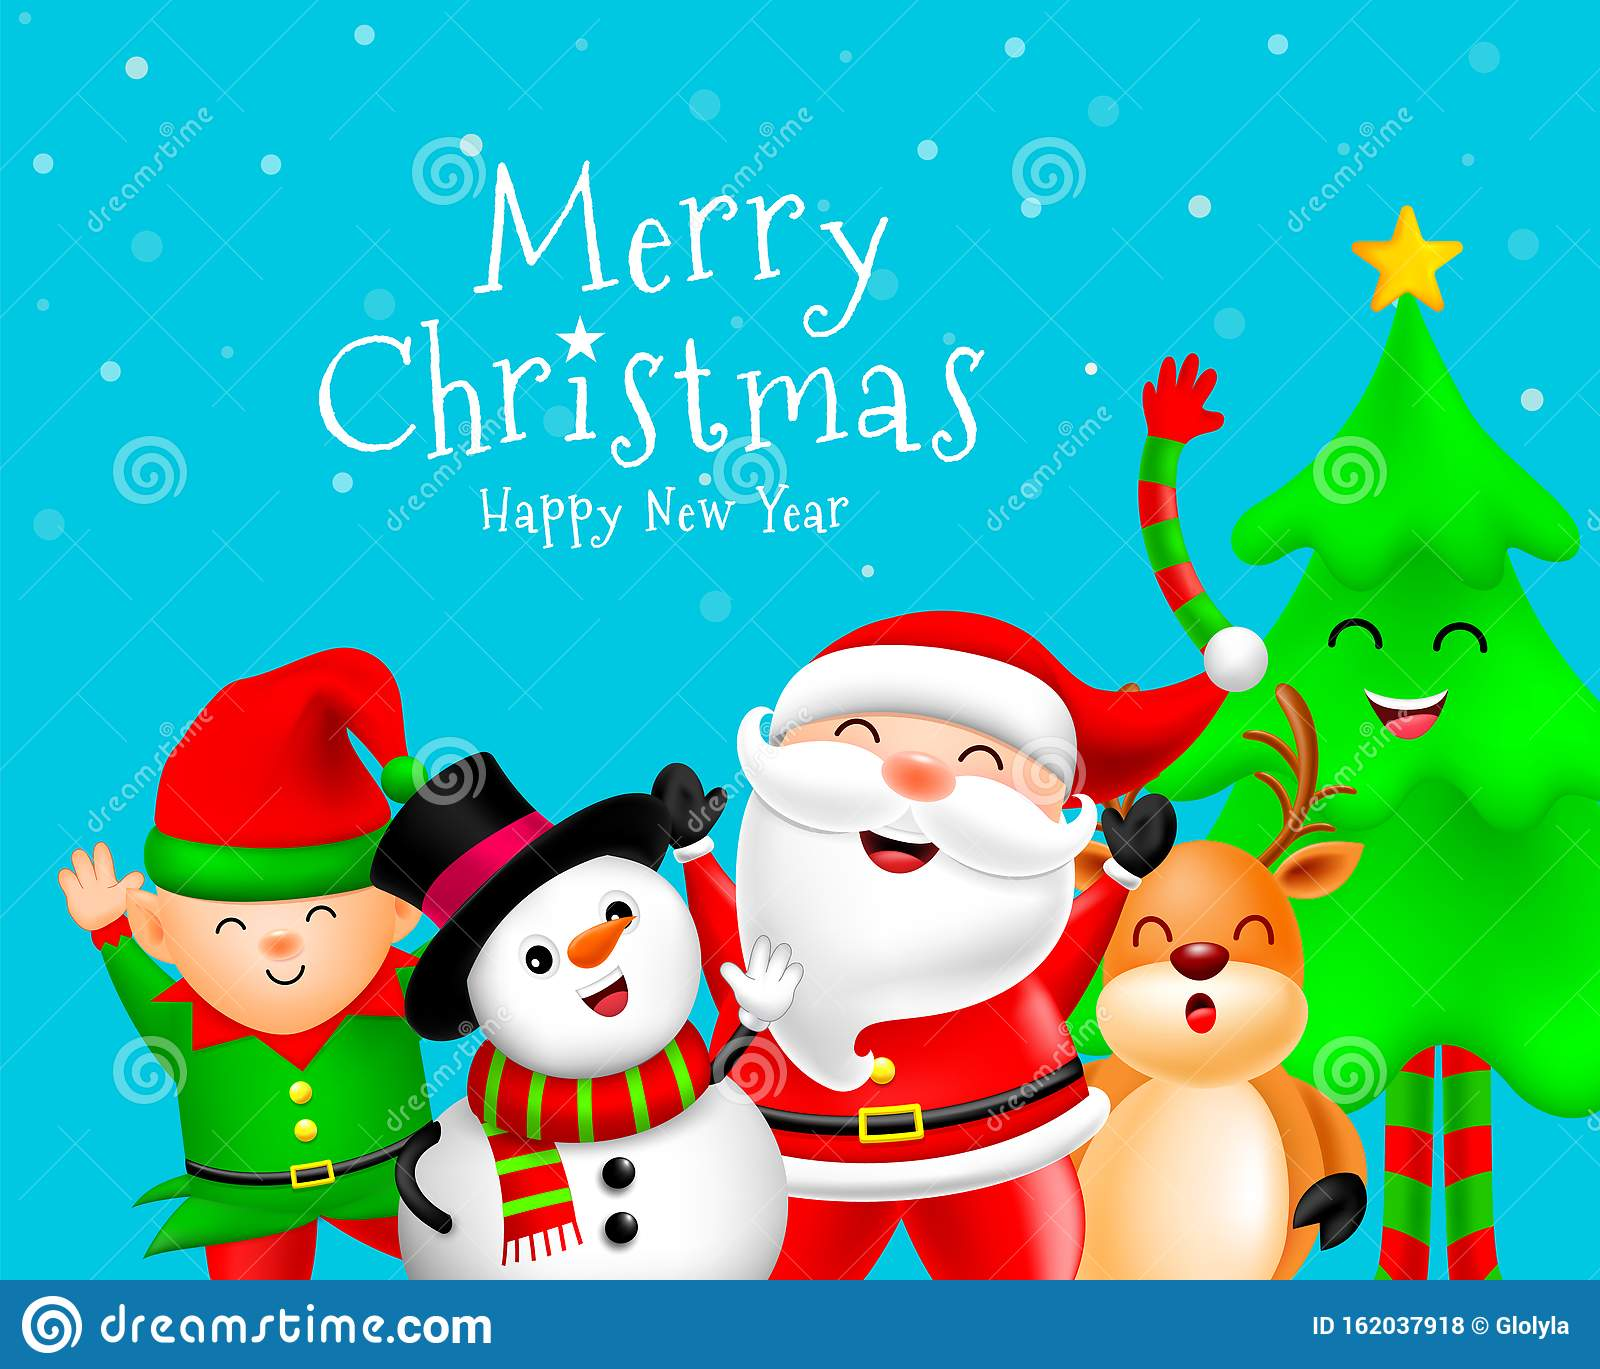 Funny Christmas Characters Design On Snow Background Santa Claus Snowman Reindeer Elf And Christmas Tree Stock Vector Illustration Of Idea Presents 162037918